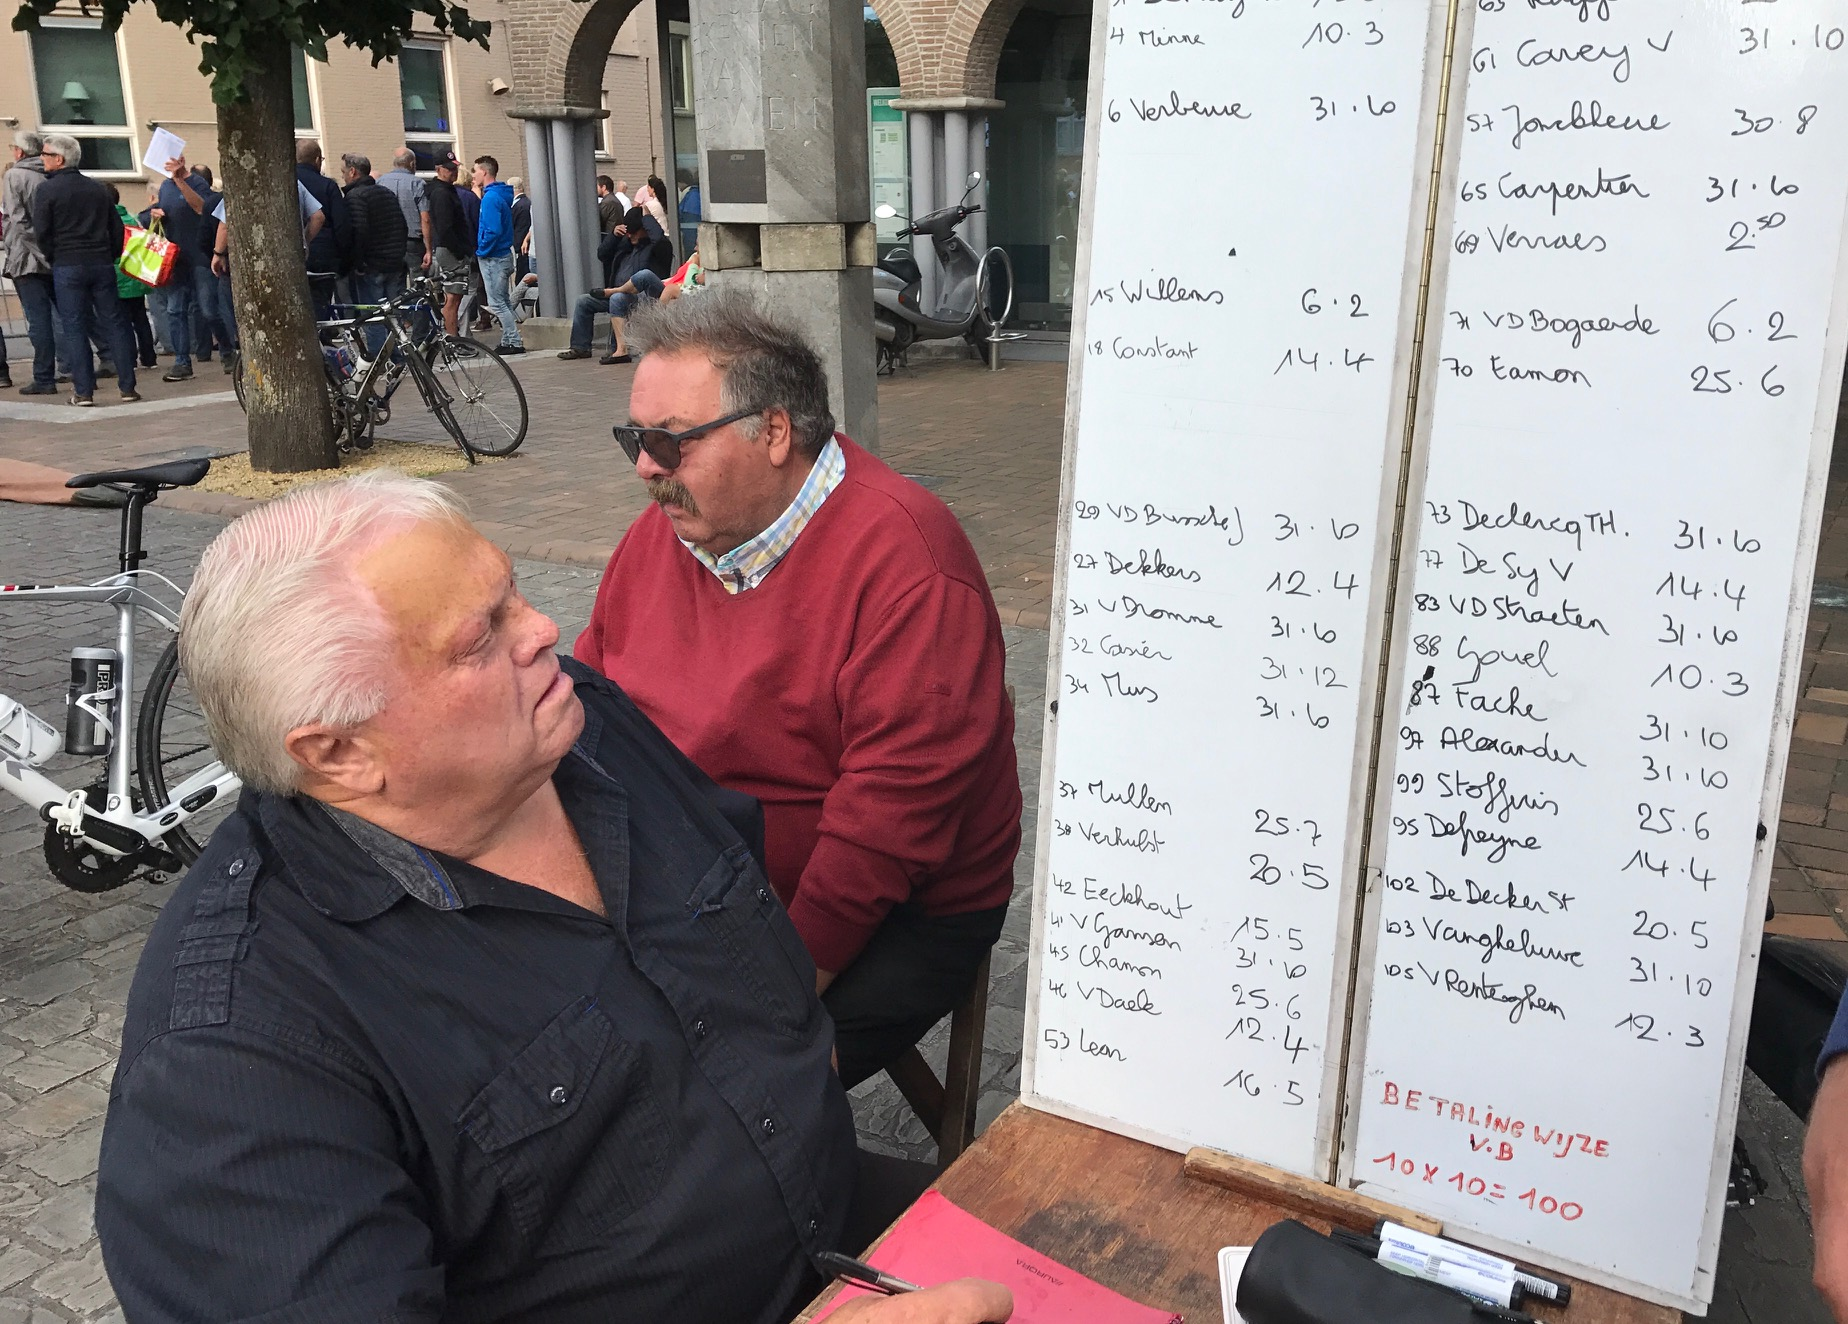 Flanders 17 - So you think the CyclingNSW State handicappers have it tough ... try being one of three bookmakers taking bets at the Oostkamp kermesse with 112 starters. The minimum bet is 5 Euro and the numbers on the right of each rider's name denotes the win-place betting odds - 25.6 means odds of 25 to 1 for the win and 6 to 1 for a podium. Not every rider who starts is listed on the betting sheet (being Flemish helps). Don't you think these bookmakers take a real keen interest as to who gets in the winning break with 4 laps to go.